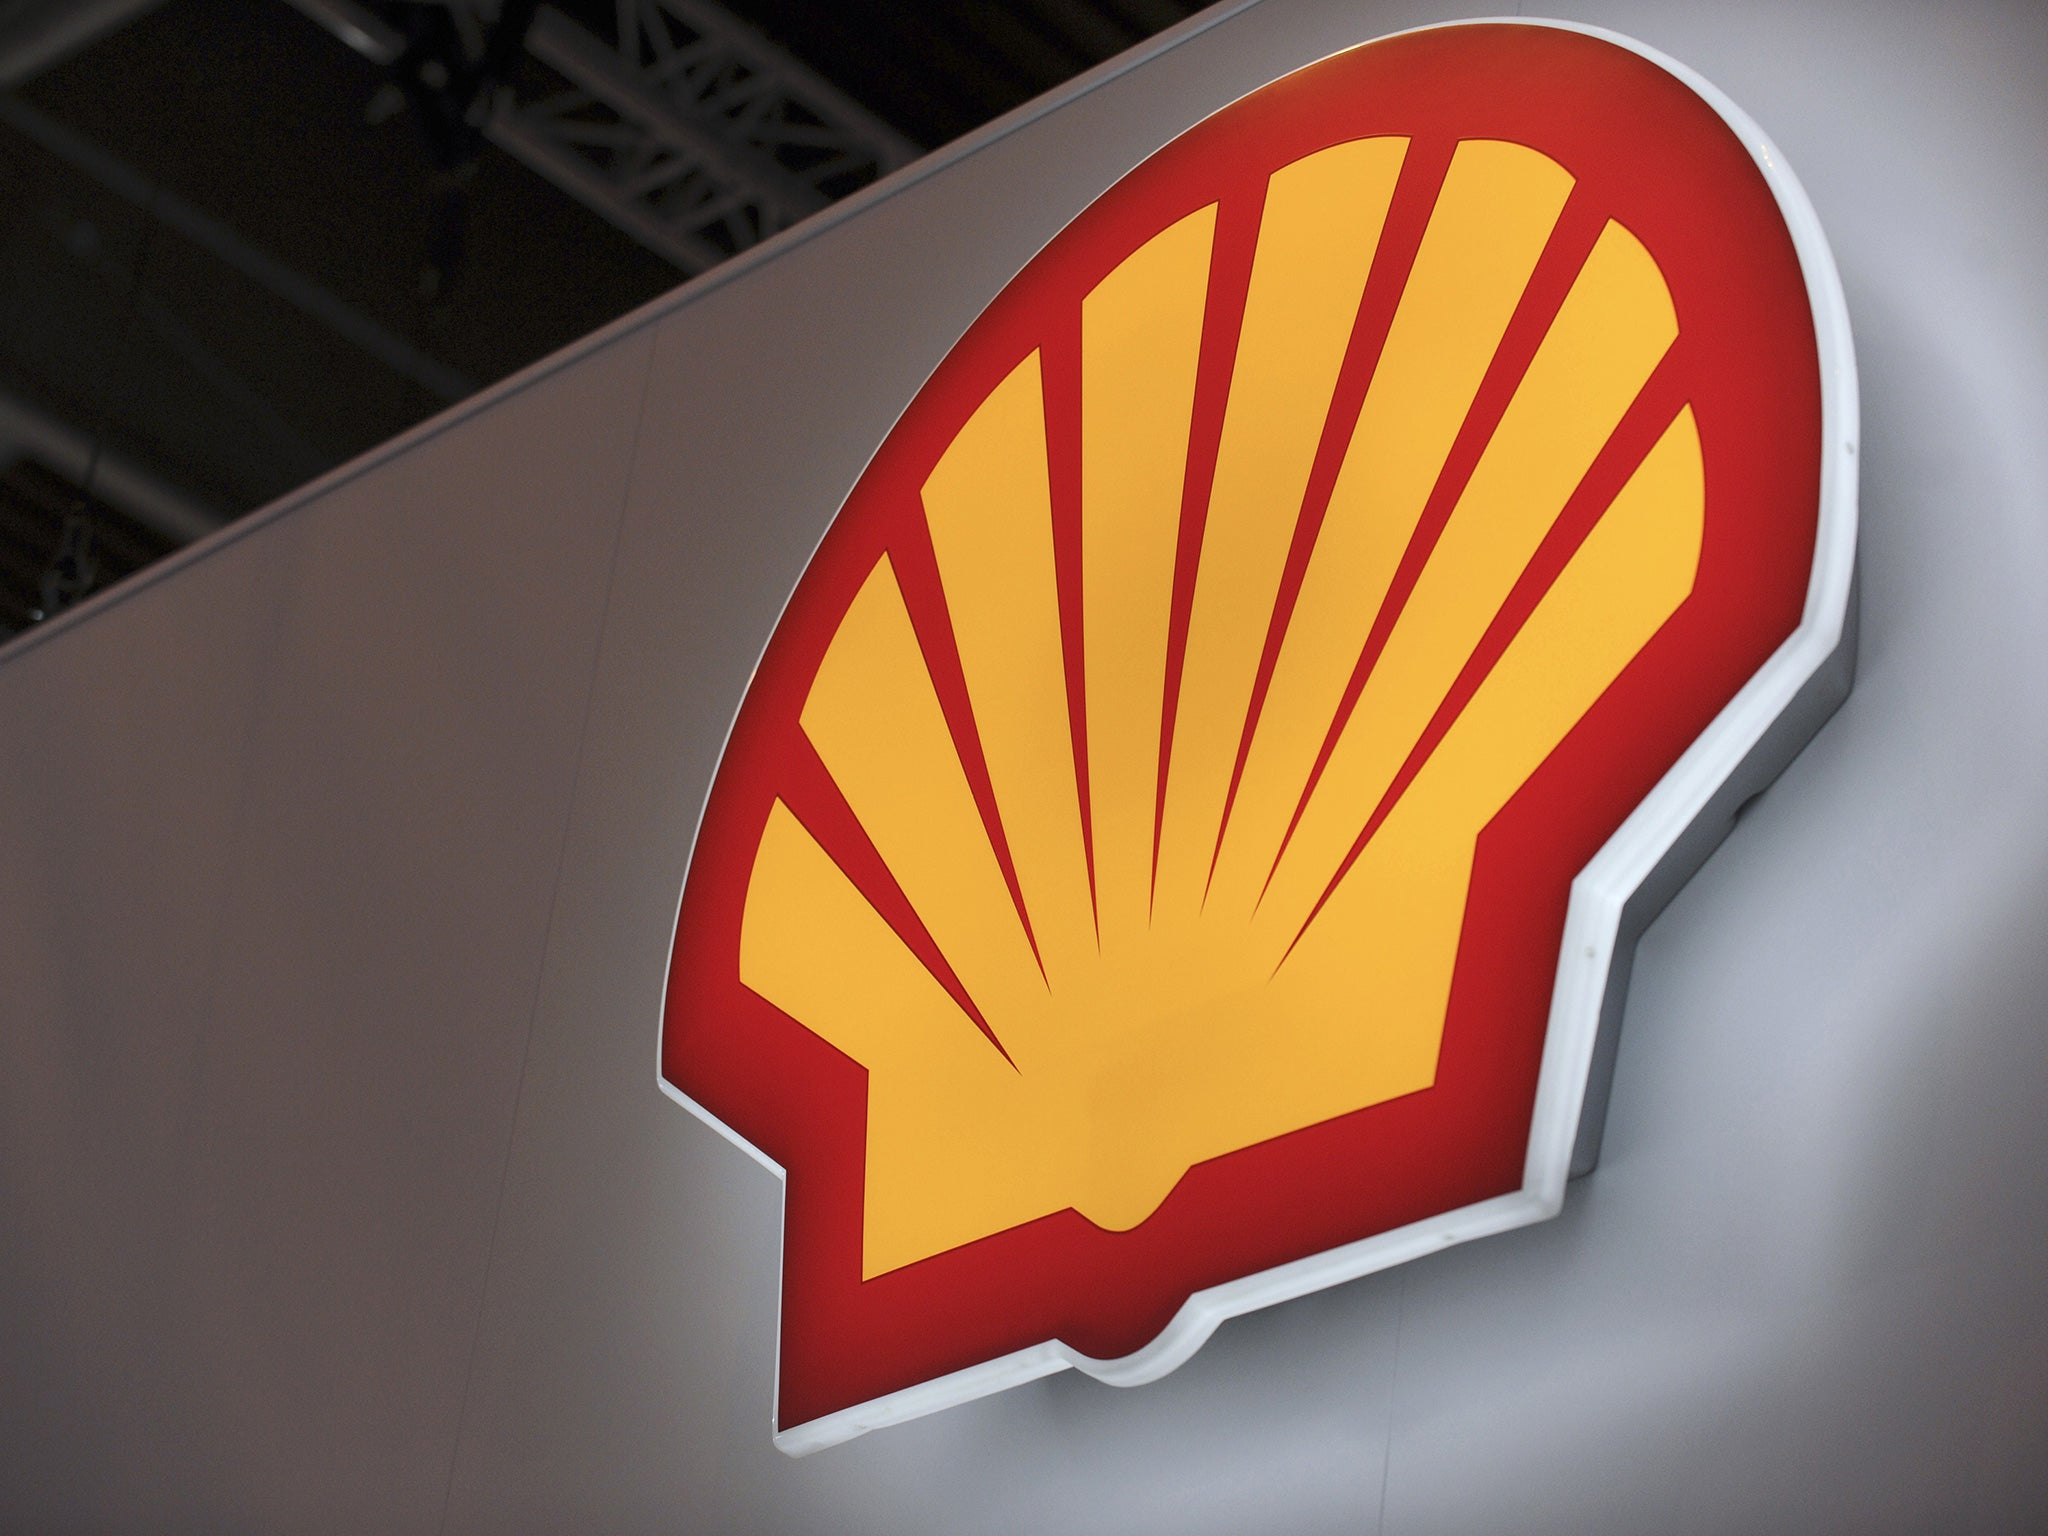 the many reasons why shell u2019s deal with bg will happen in